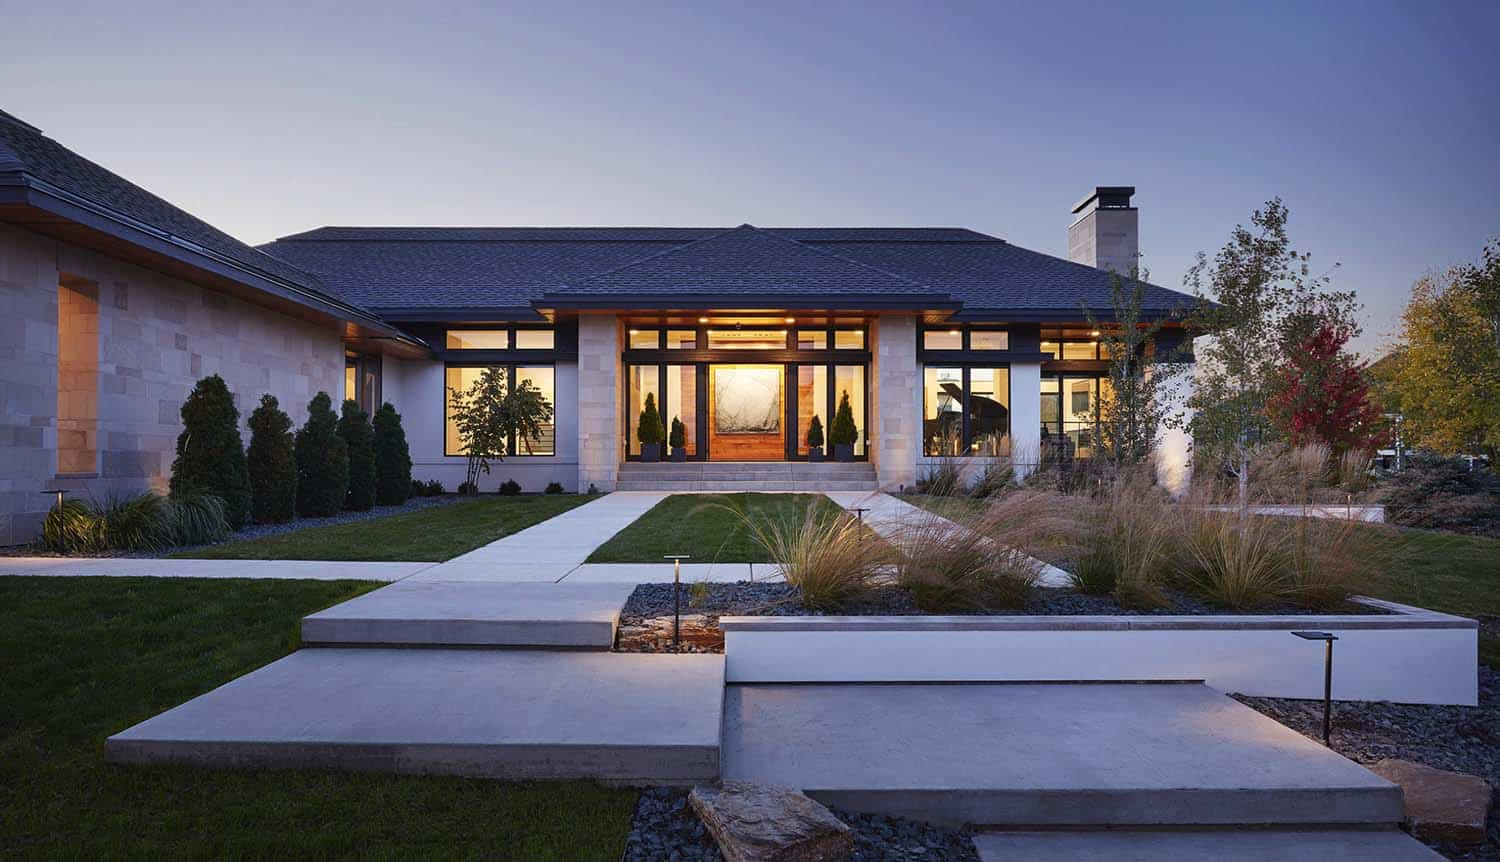 Modern home displays sophisticated interior styling in South Dakota